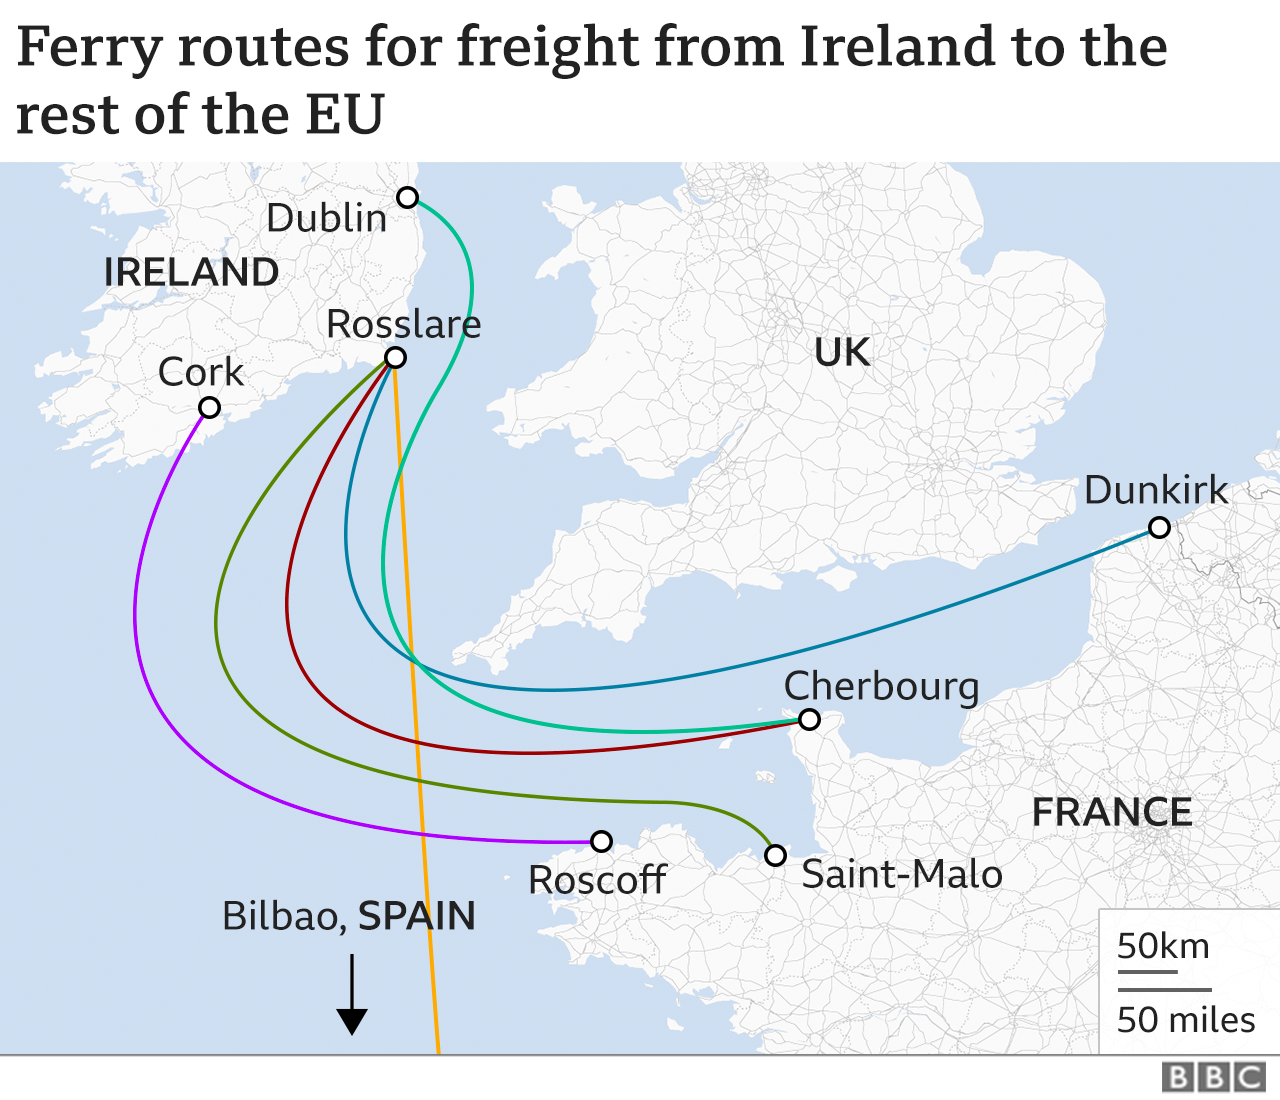 Map showing ferry routes for freight from Ireland the the rest of the EU